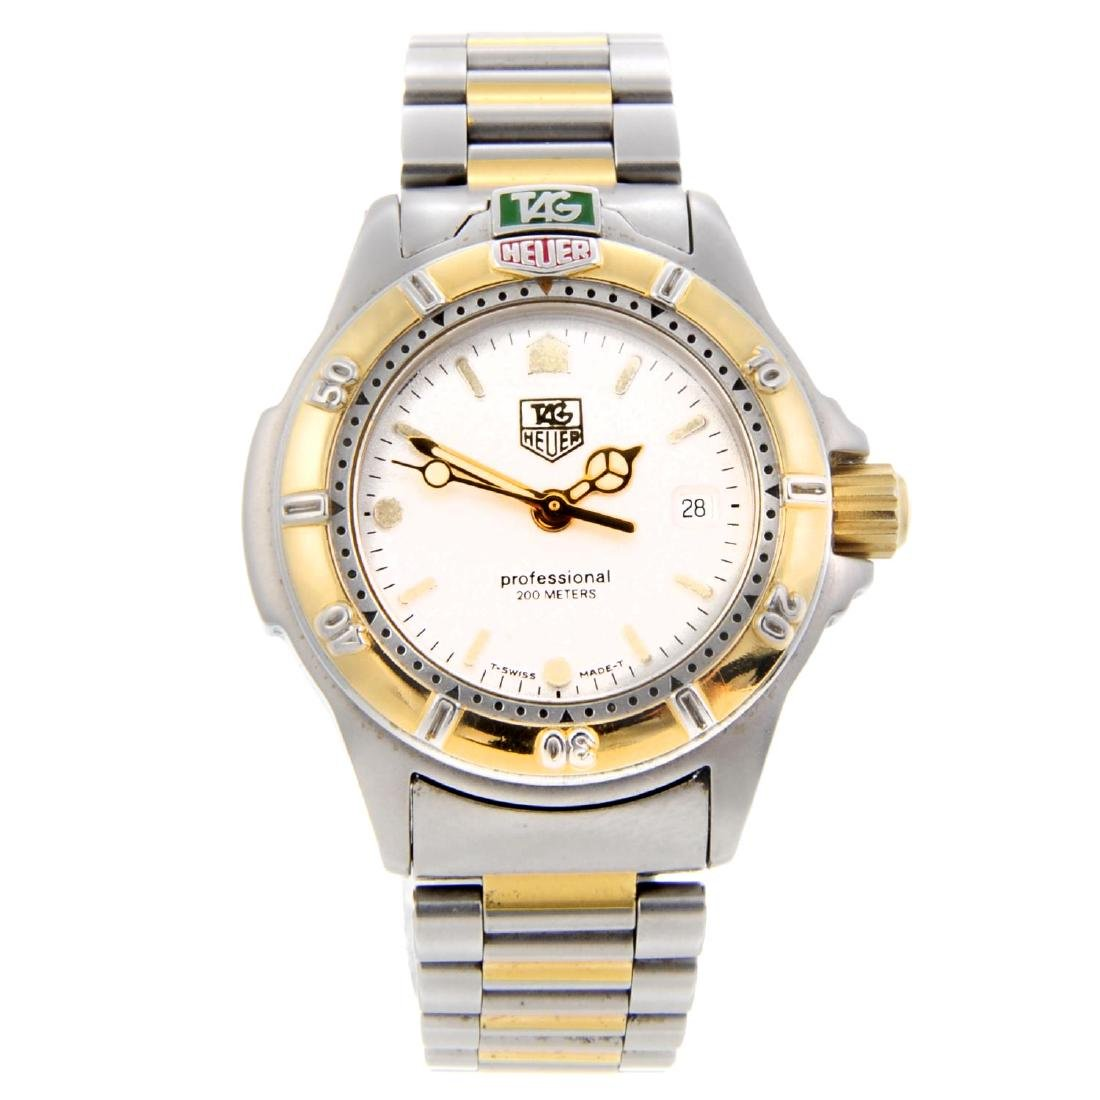 TAG HEUER - a lady's 4000 Series bracelet watch.